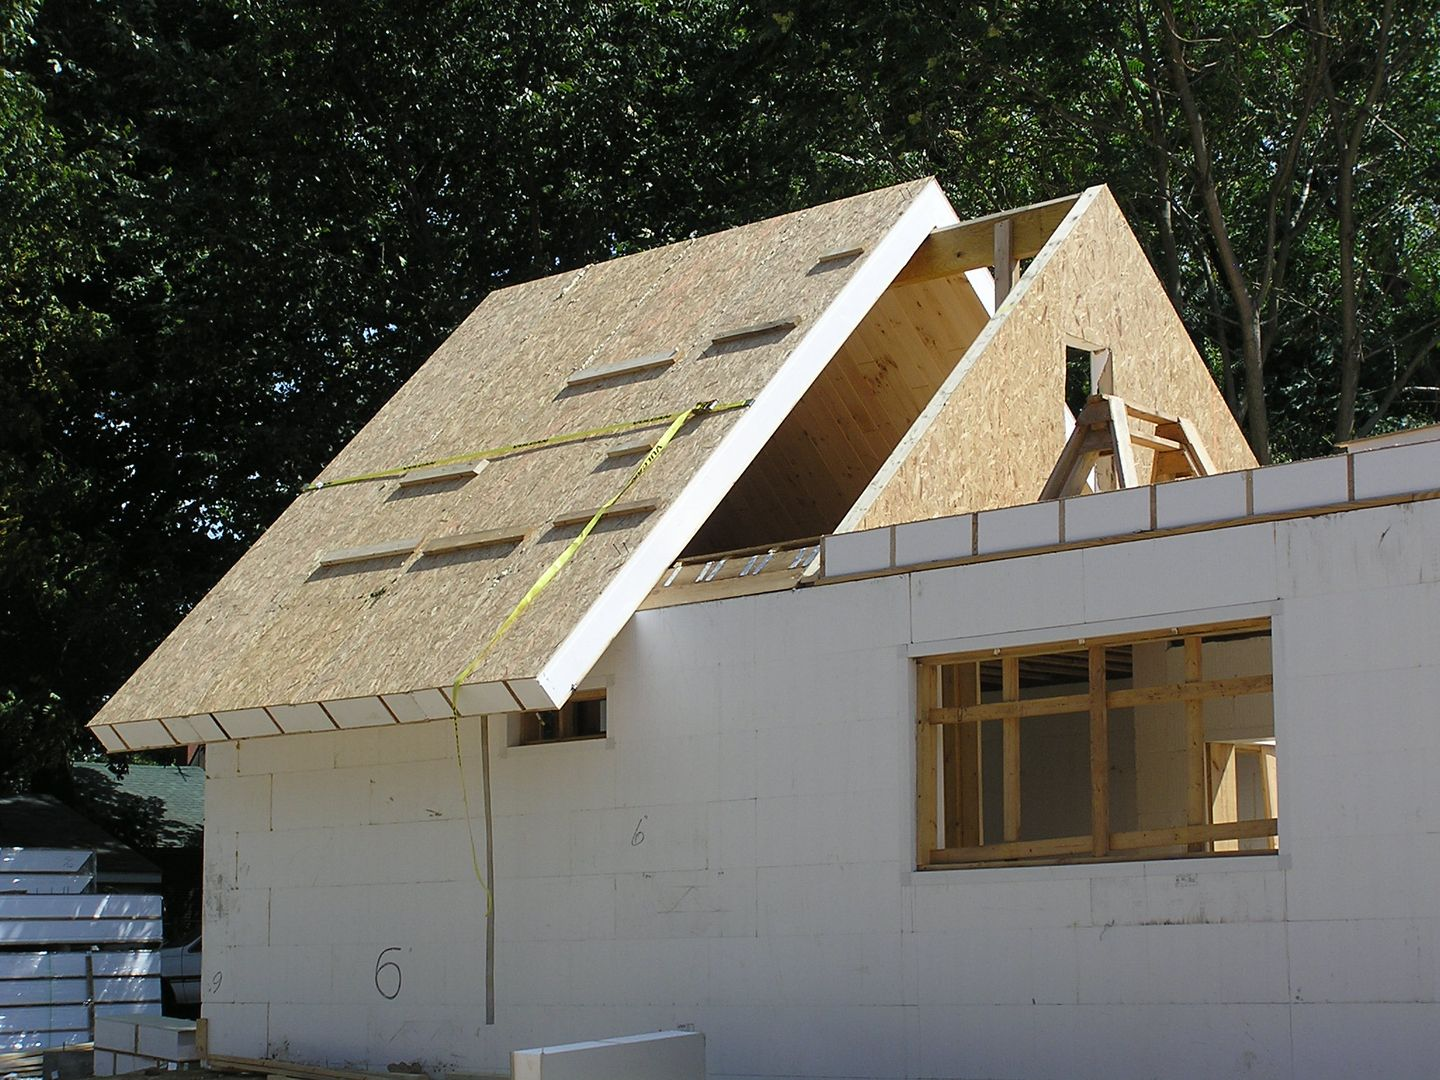 Eagle Panel Systems Inc Sip Manufacture Custom Designed Panels Sip Manufacturers Of Integroove A Passive House Design Sip House Structural Insulated Panels